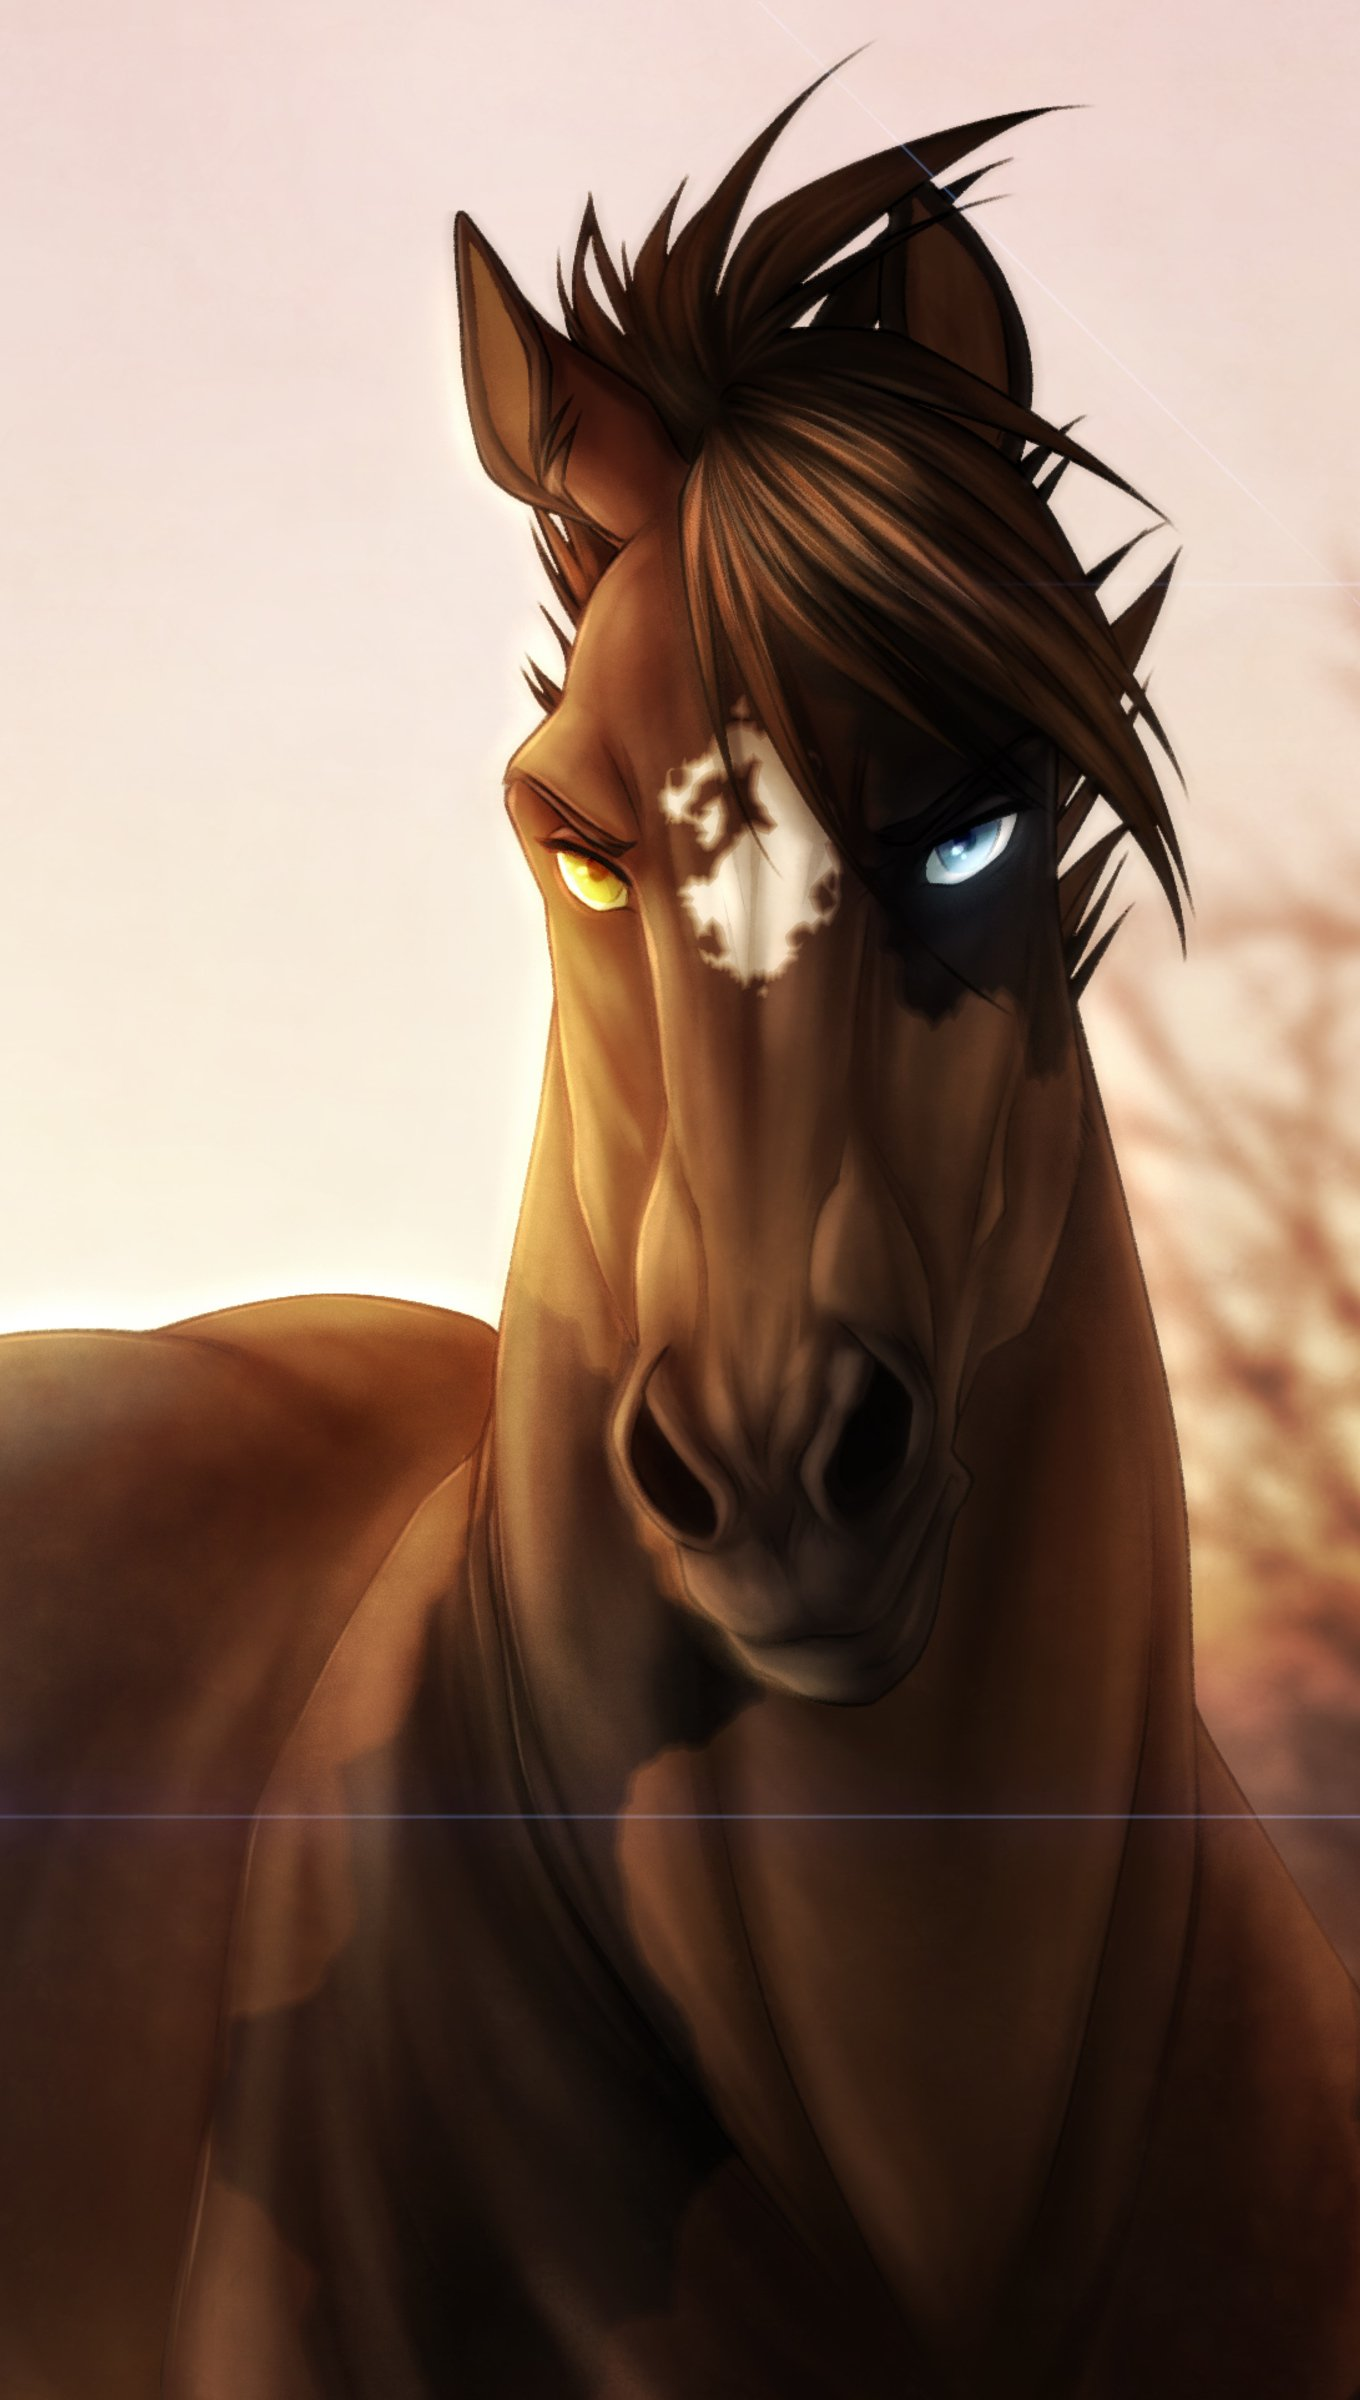 Wallpaper Horse with intense stare Vertical